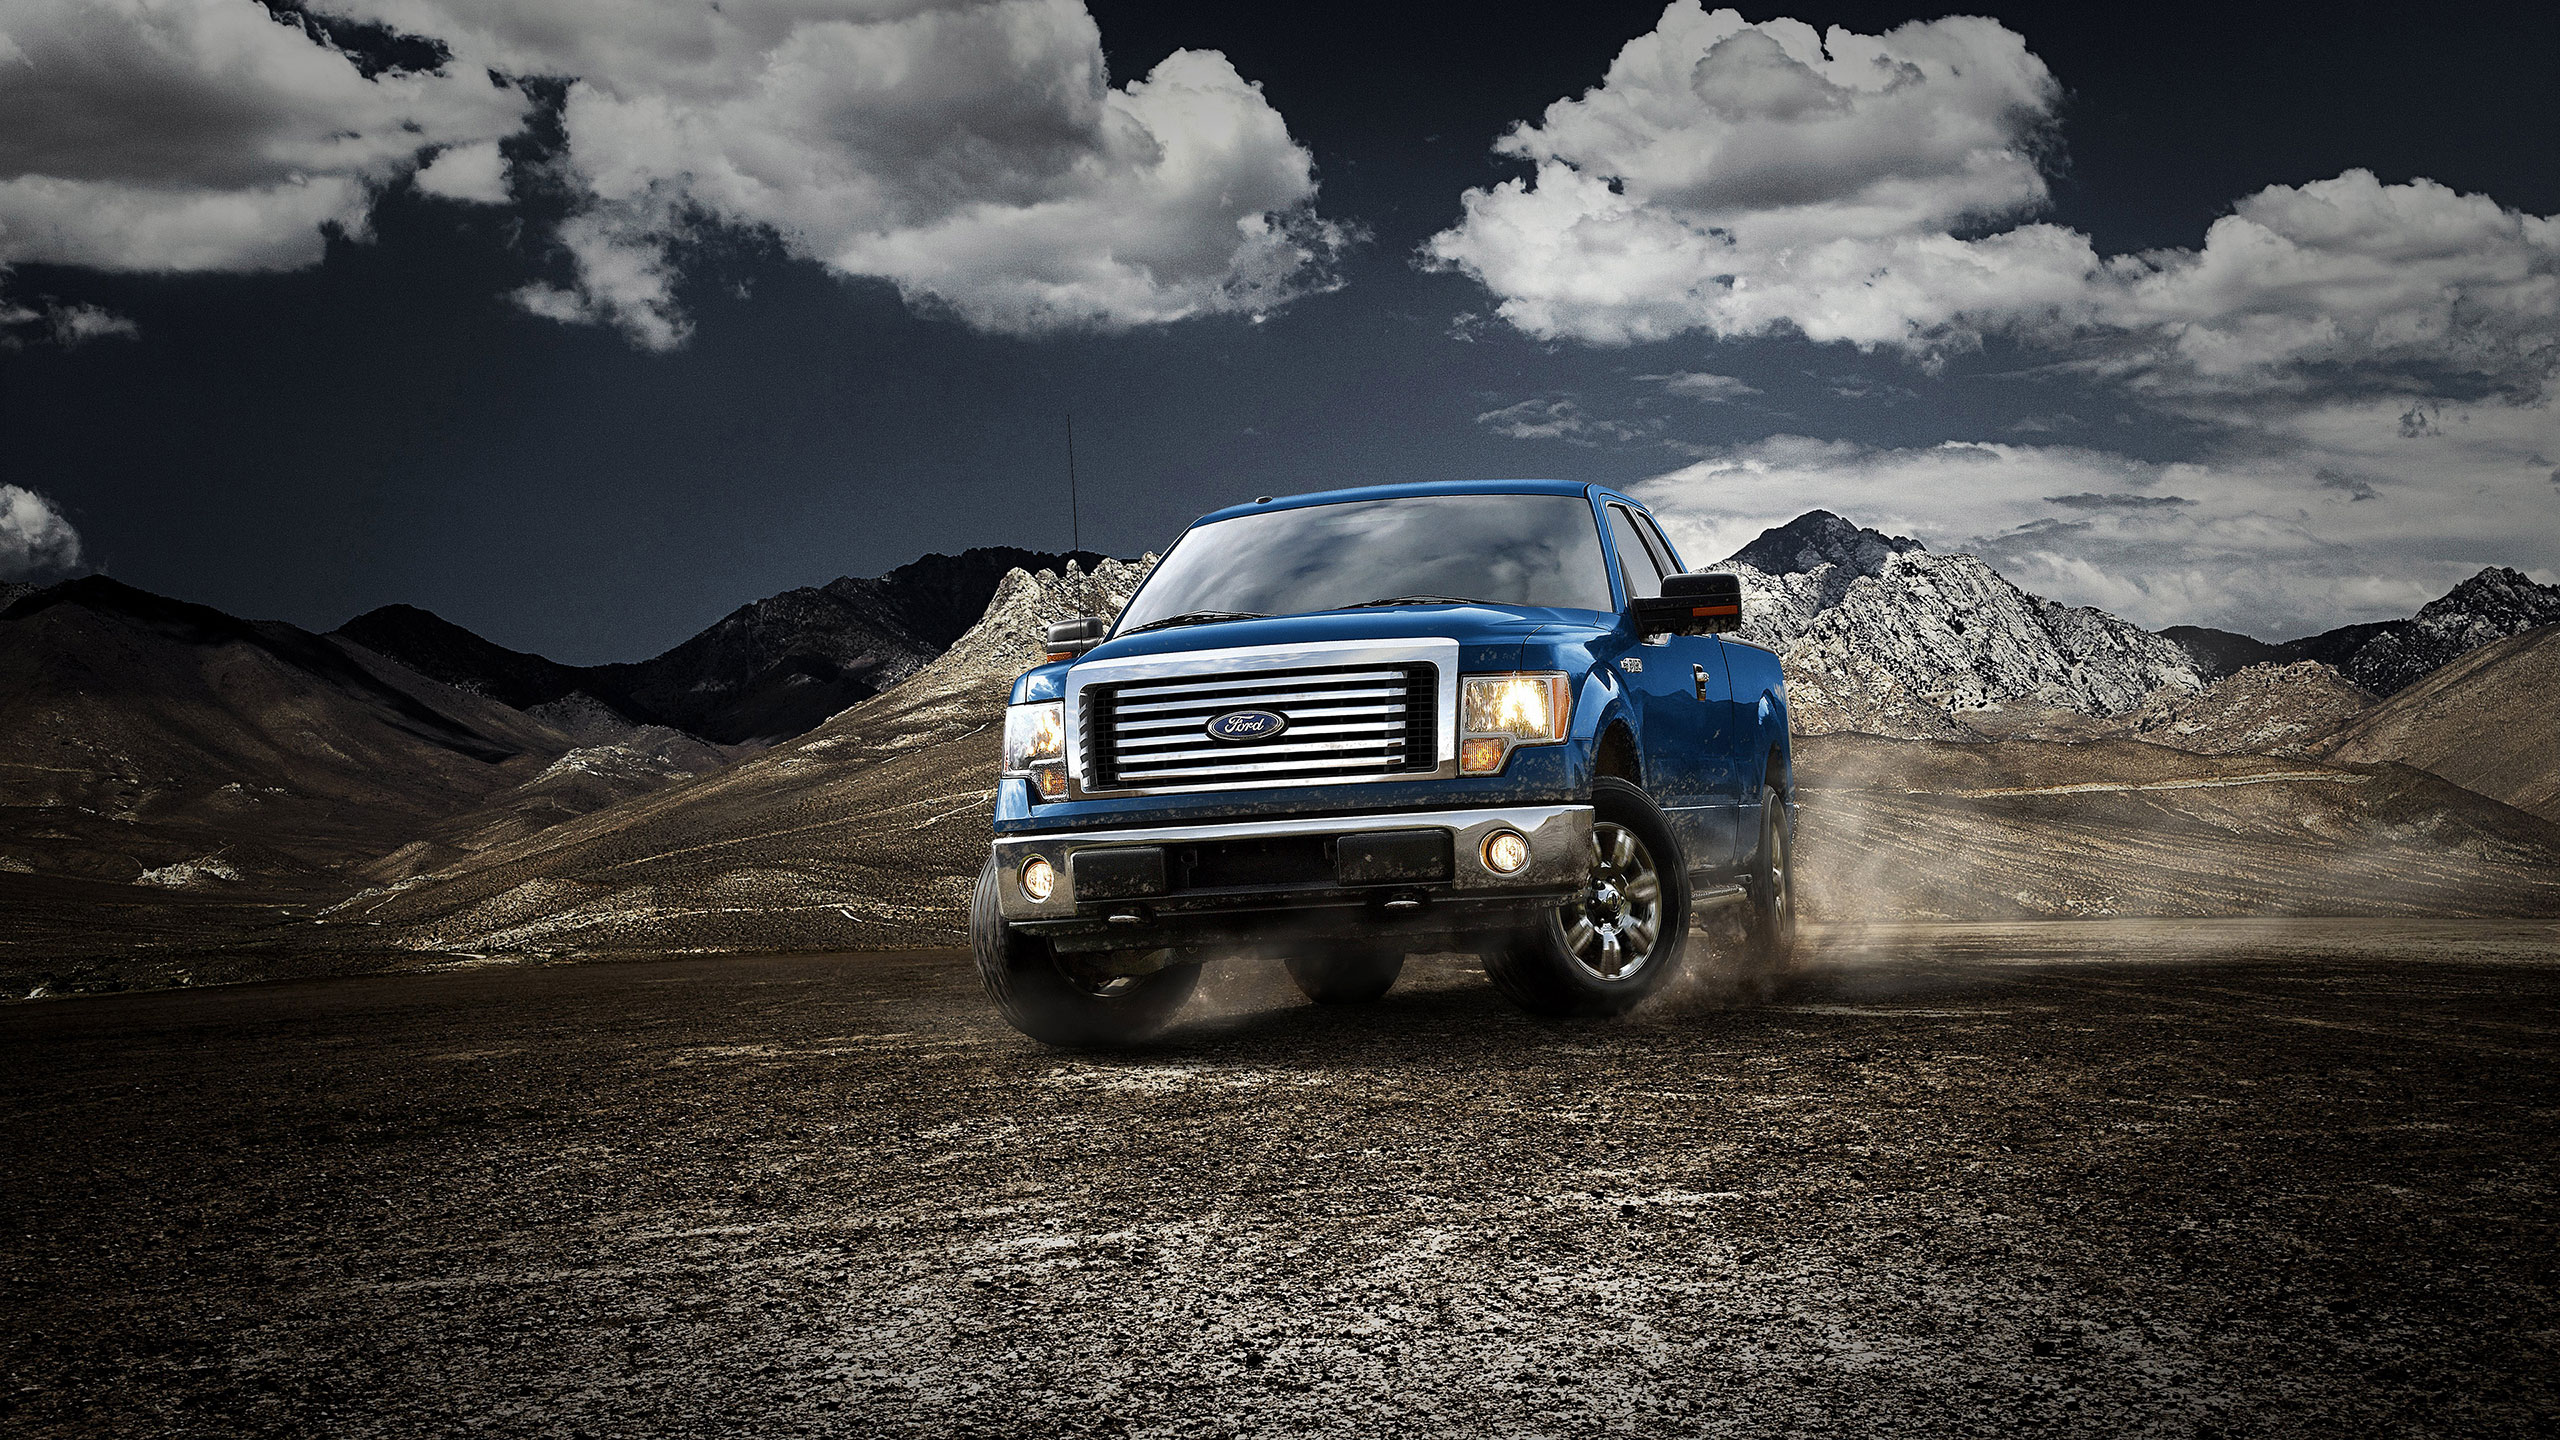 Ford F 150 Full HD Wallpaper And Background Image